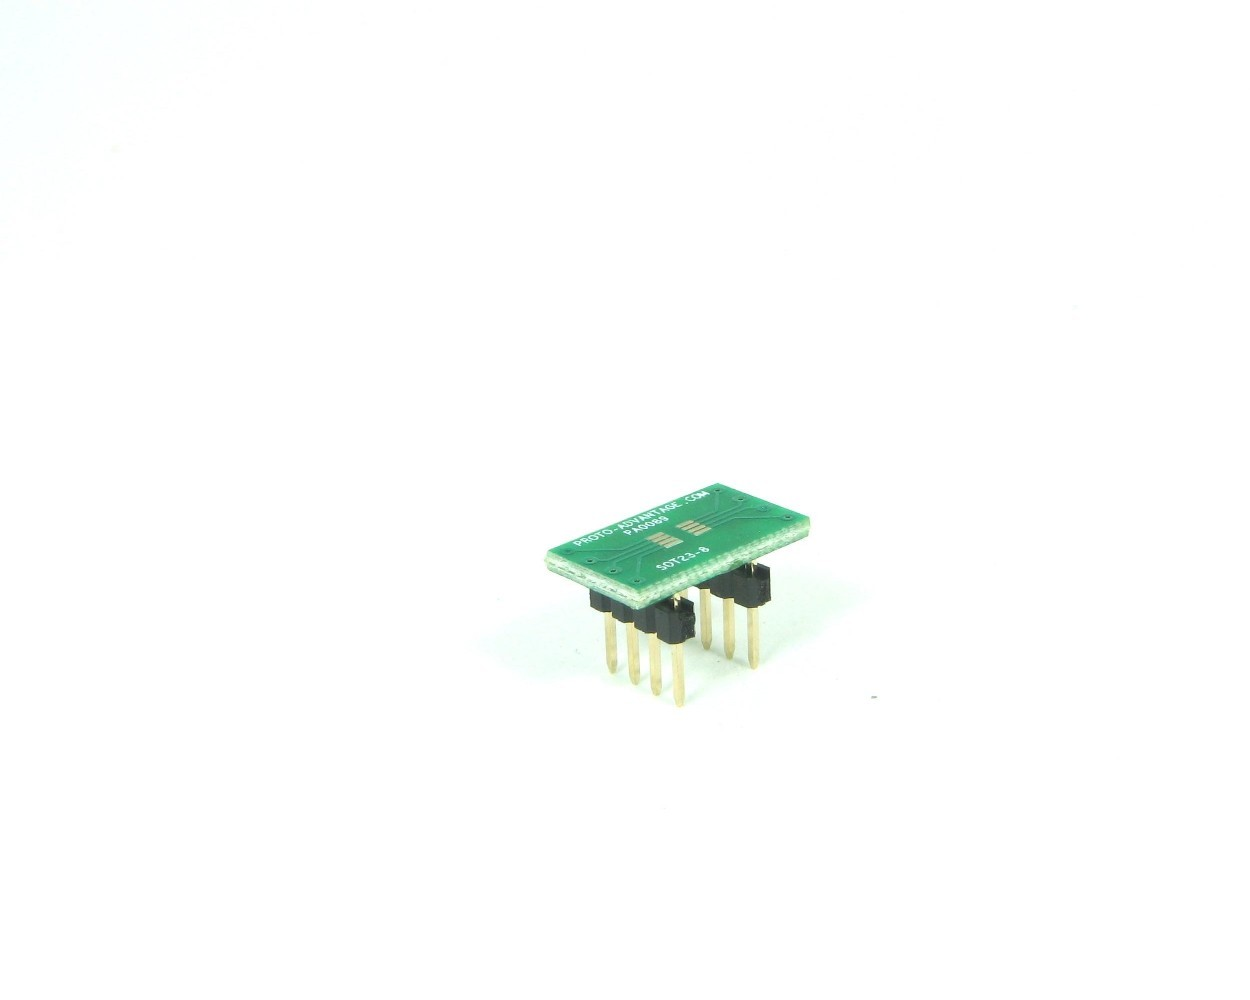 SOT23-8 to DIP-8 SMT Adapter (0.65 mm pitch)